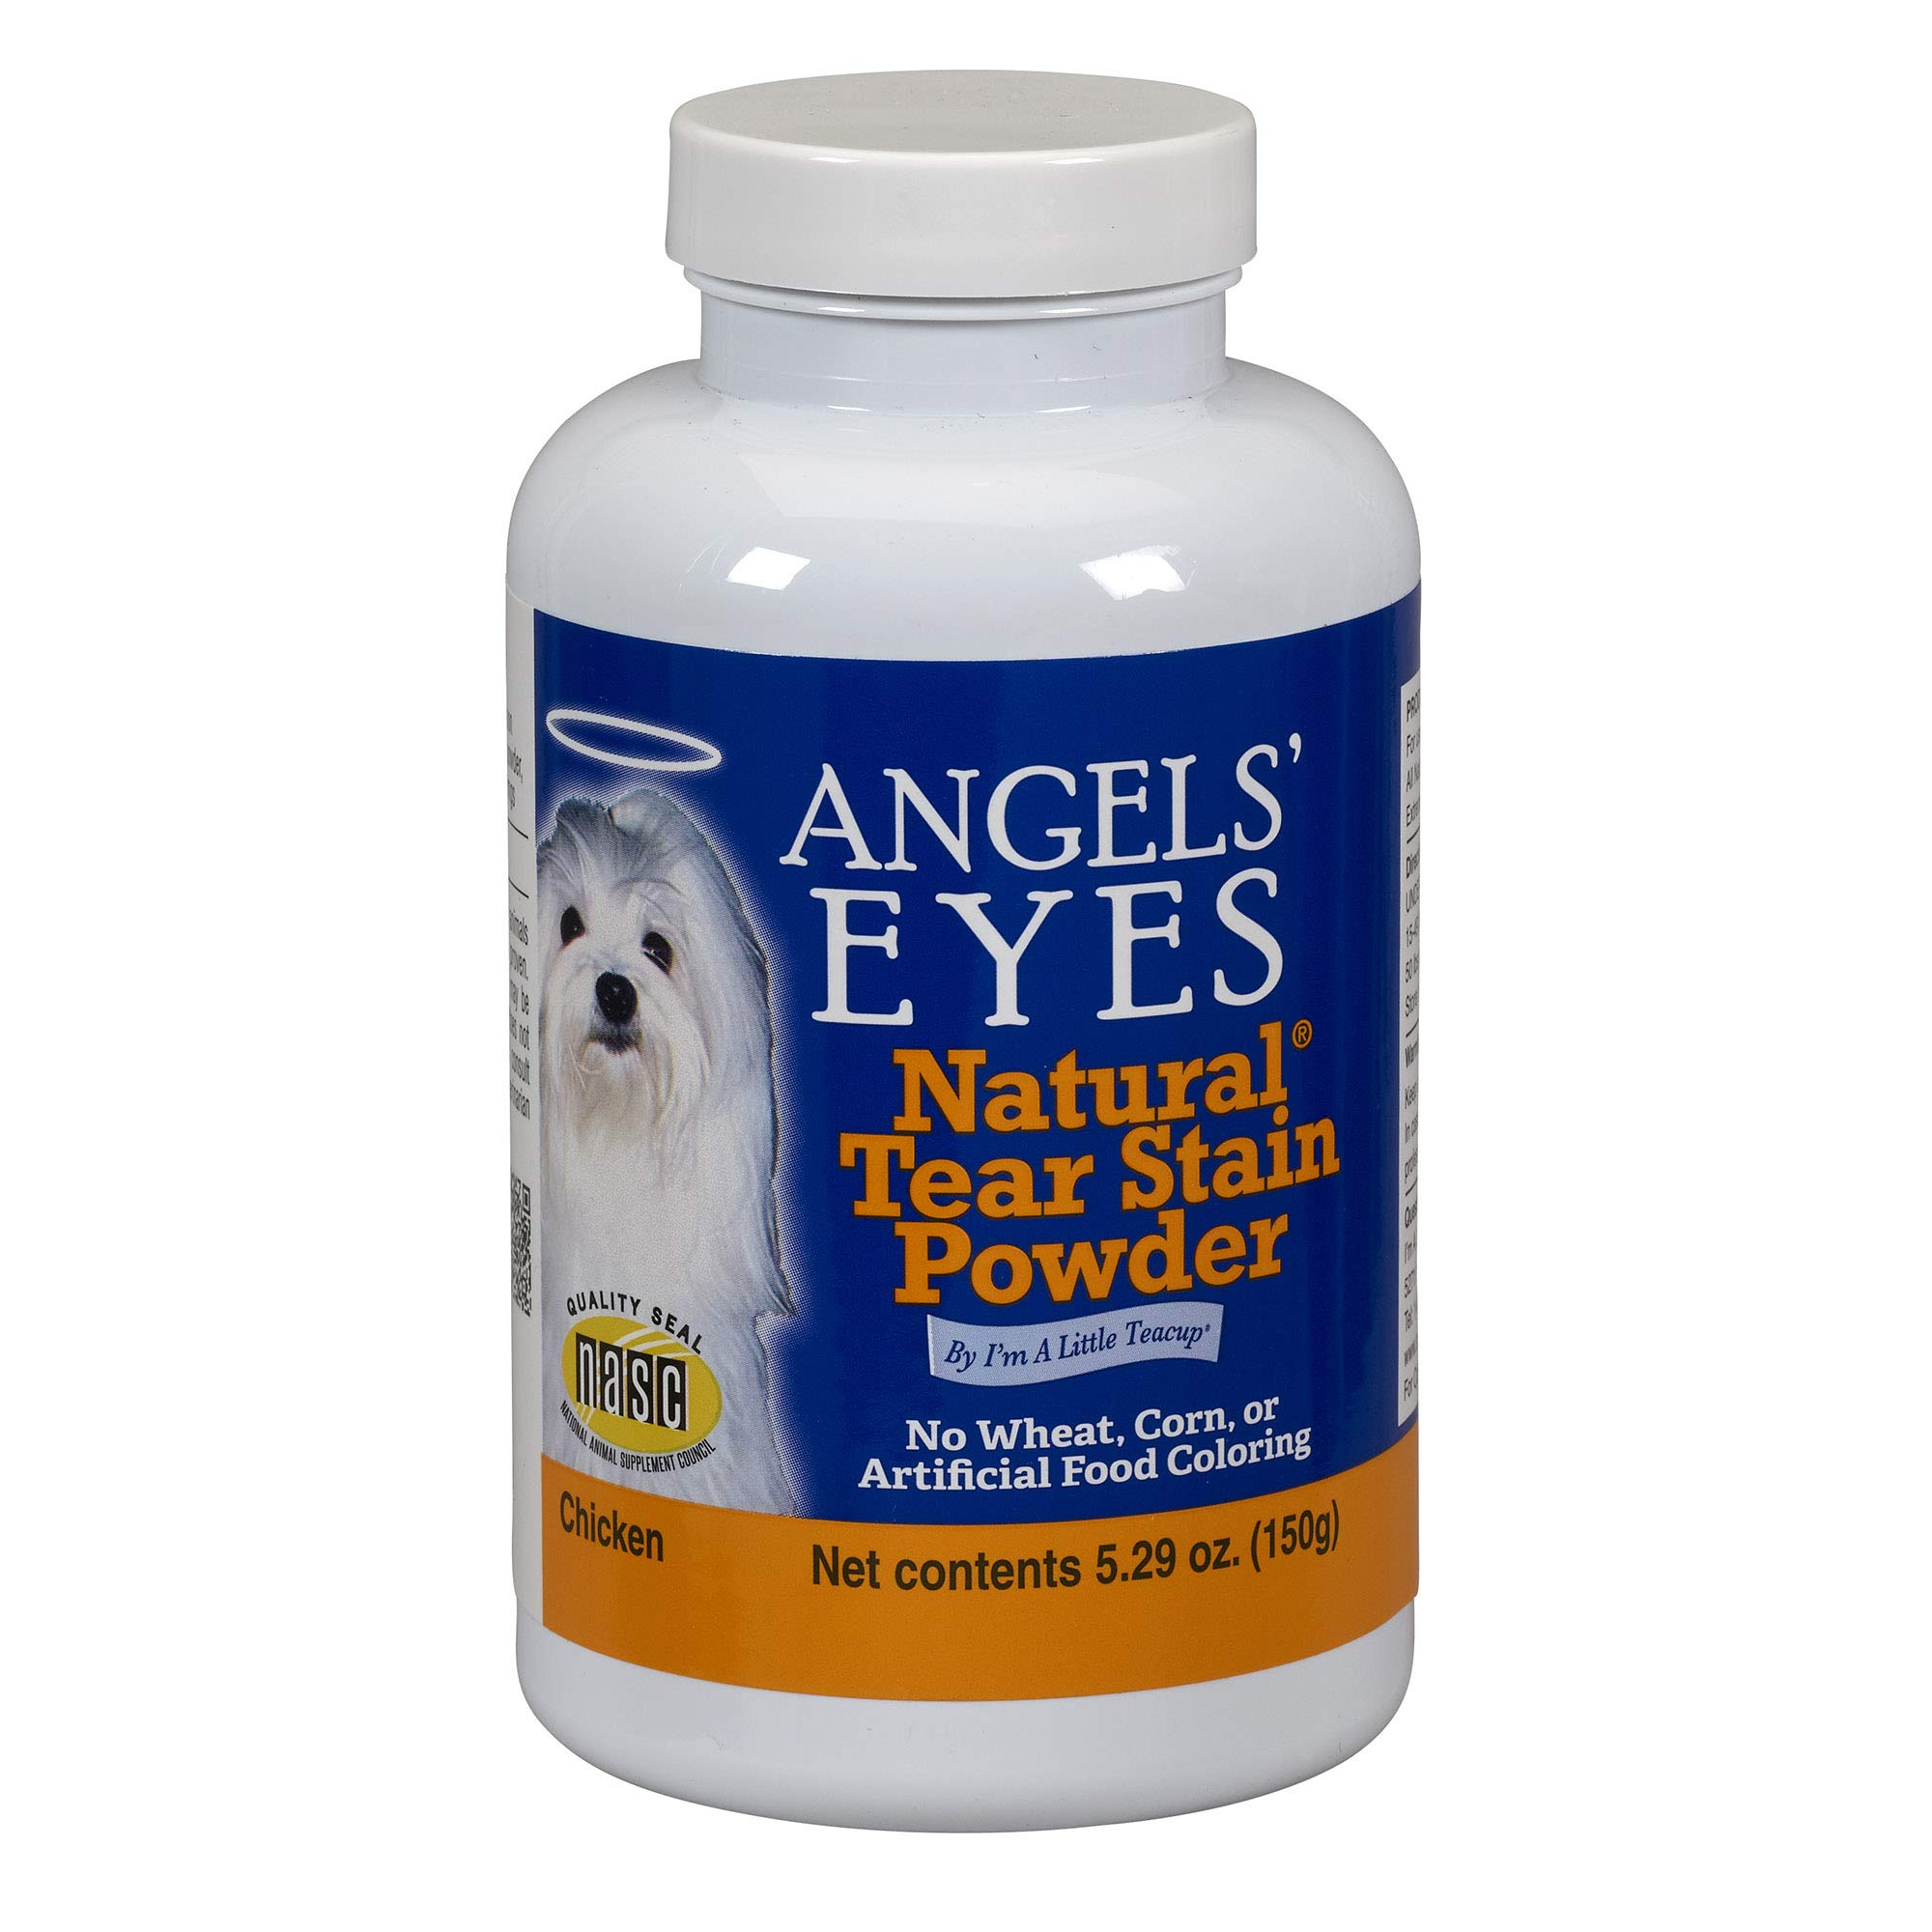 Angels' Eyes Natural Tear Stain Eliminator Remover - CHICKEN (5.29 oz) 150 gram by Angel's Eyes